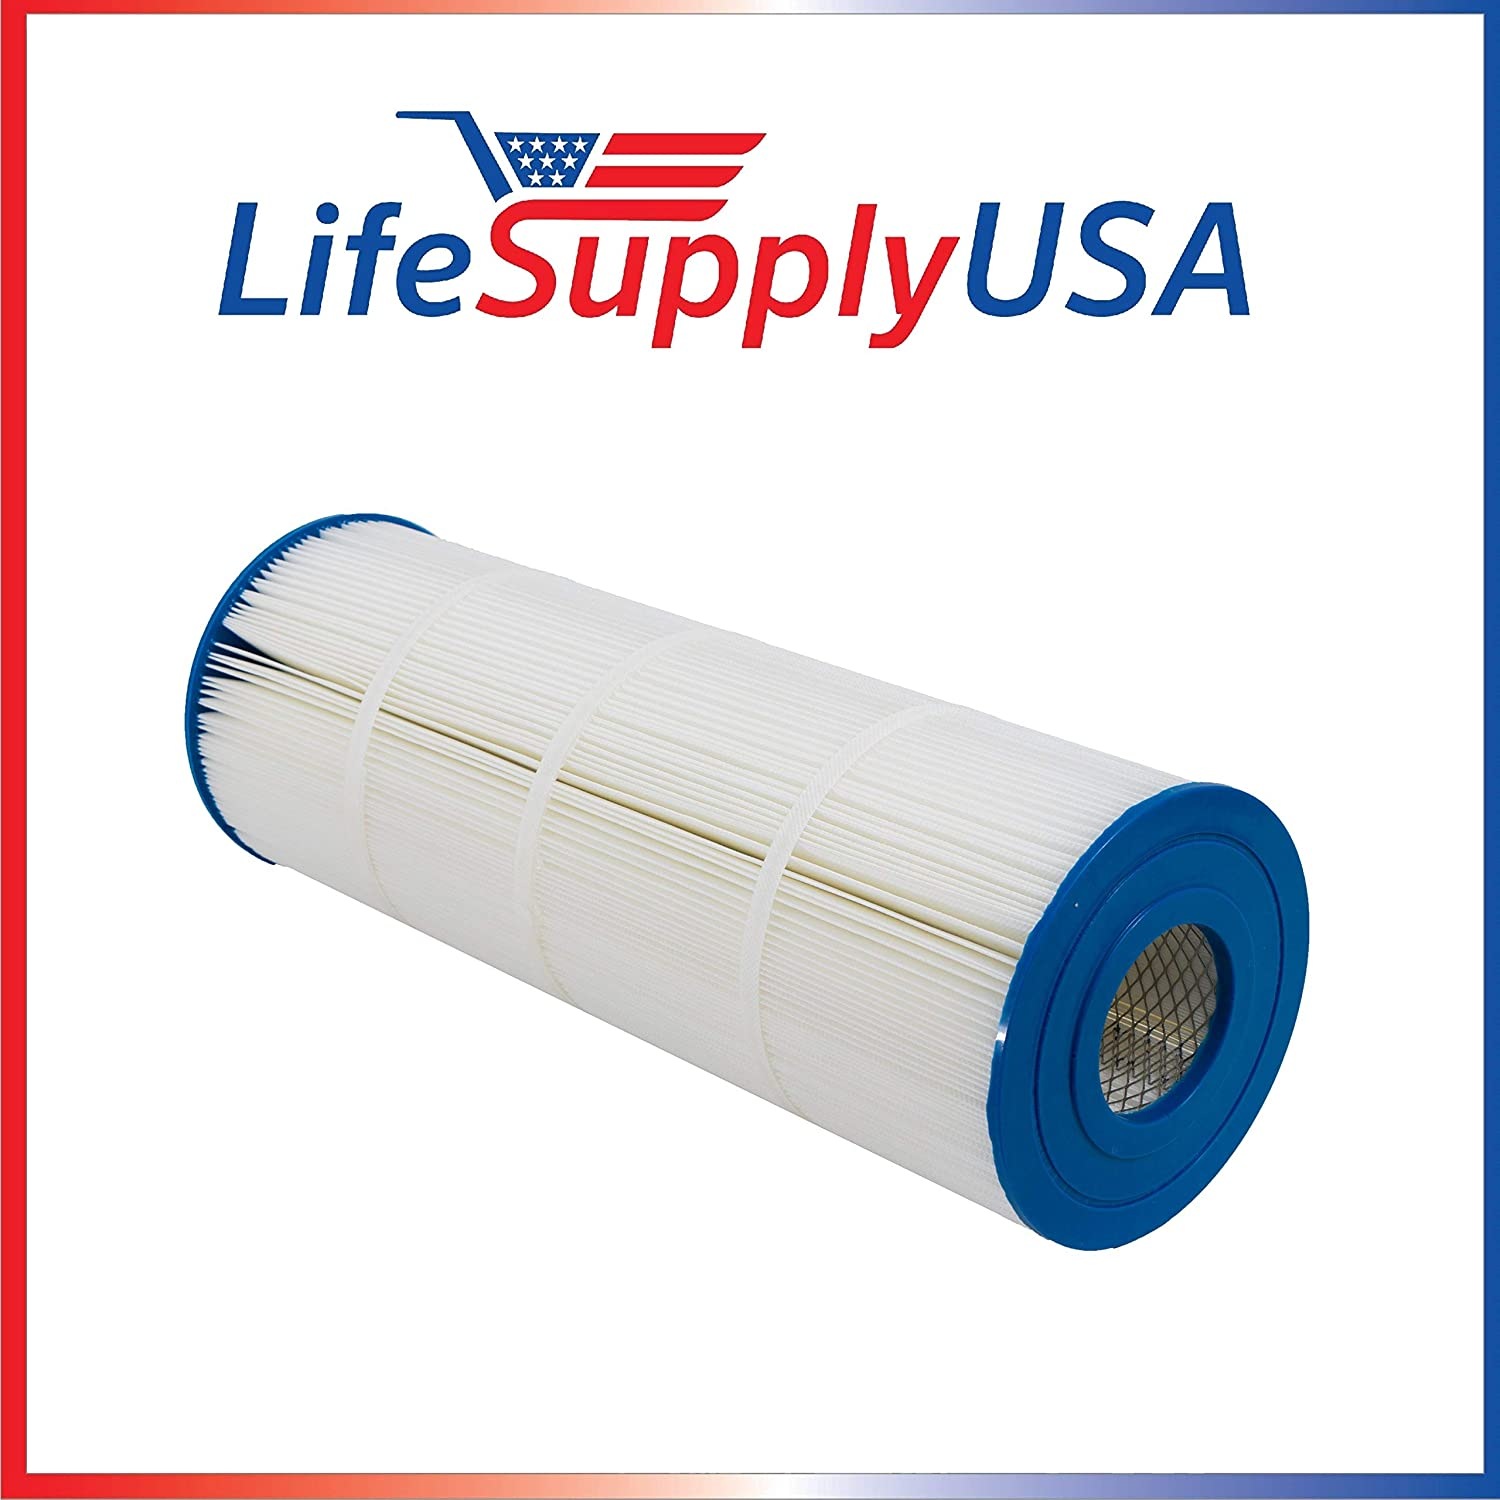 LifeSupplyUSA 2 Pool Spa Filters Compatible with 120 Square Foot Unicel C-8412 Hayward CX1200RE Pleatco PA120 Filbur FC-1293 Waterway Pro Clean Clearwater II 125